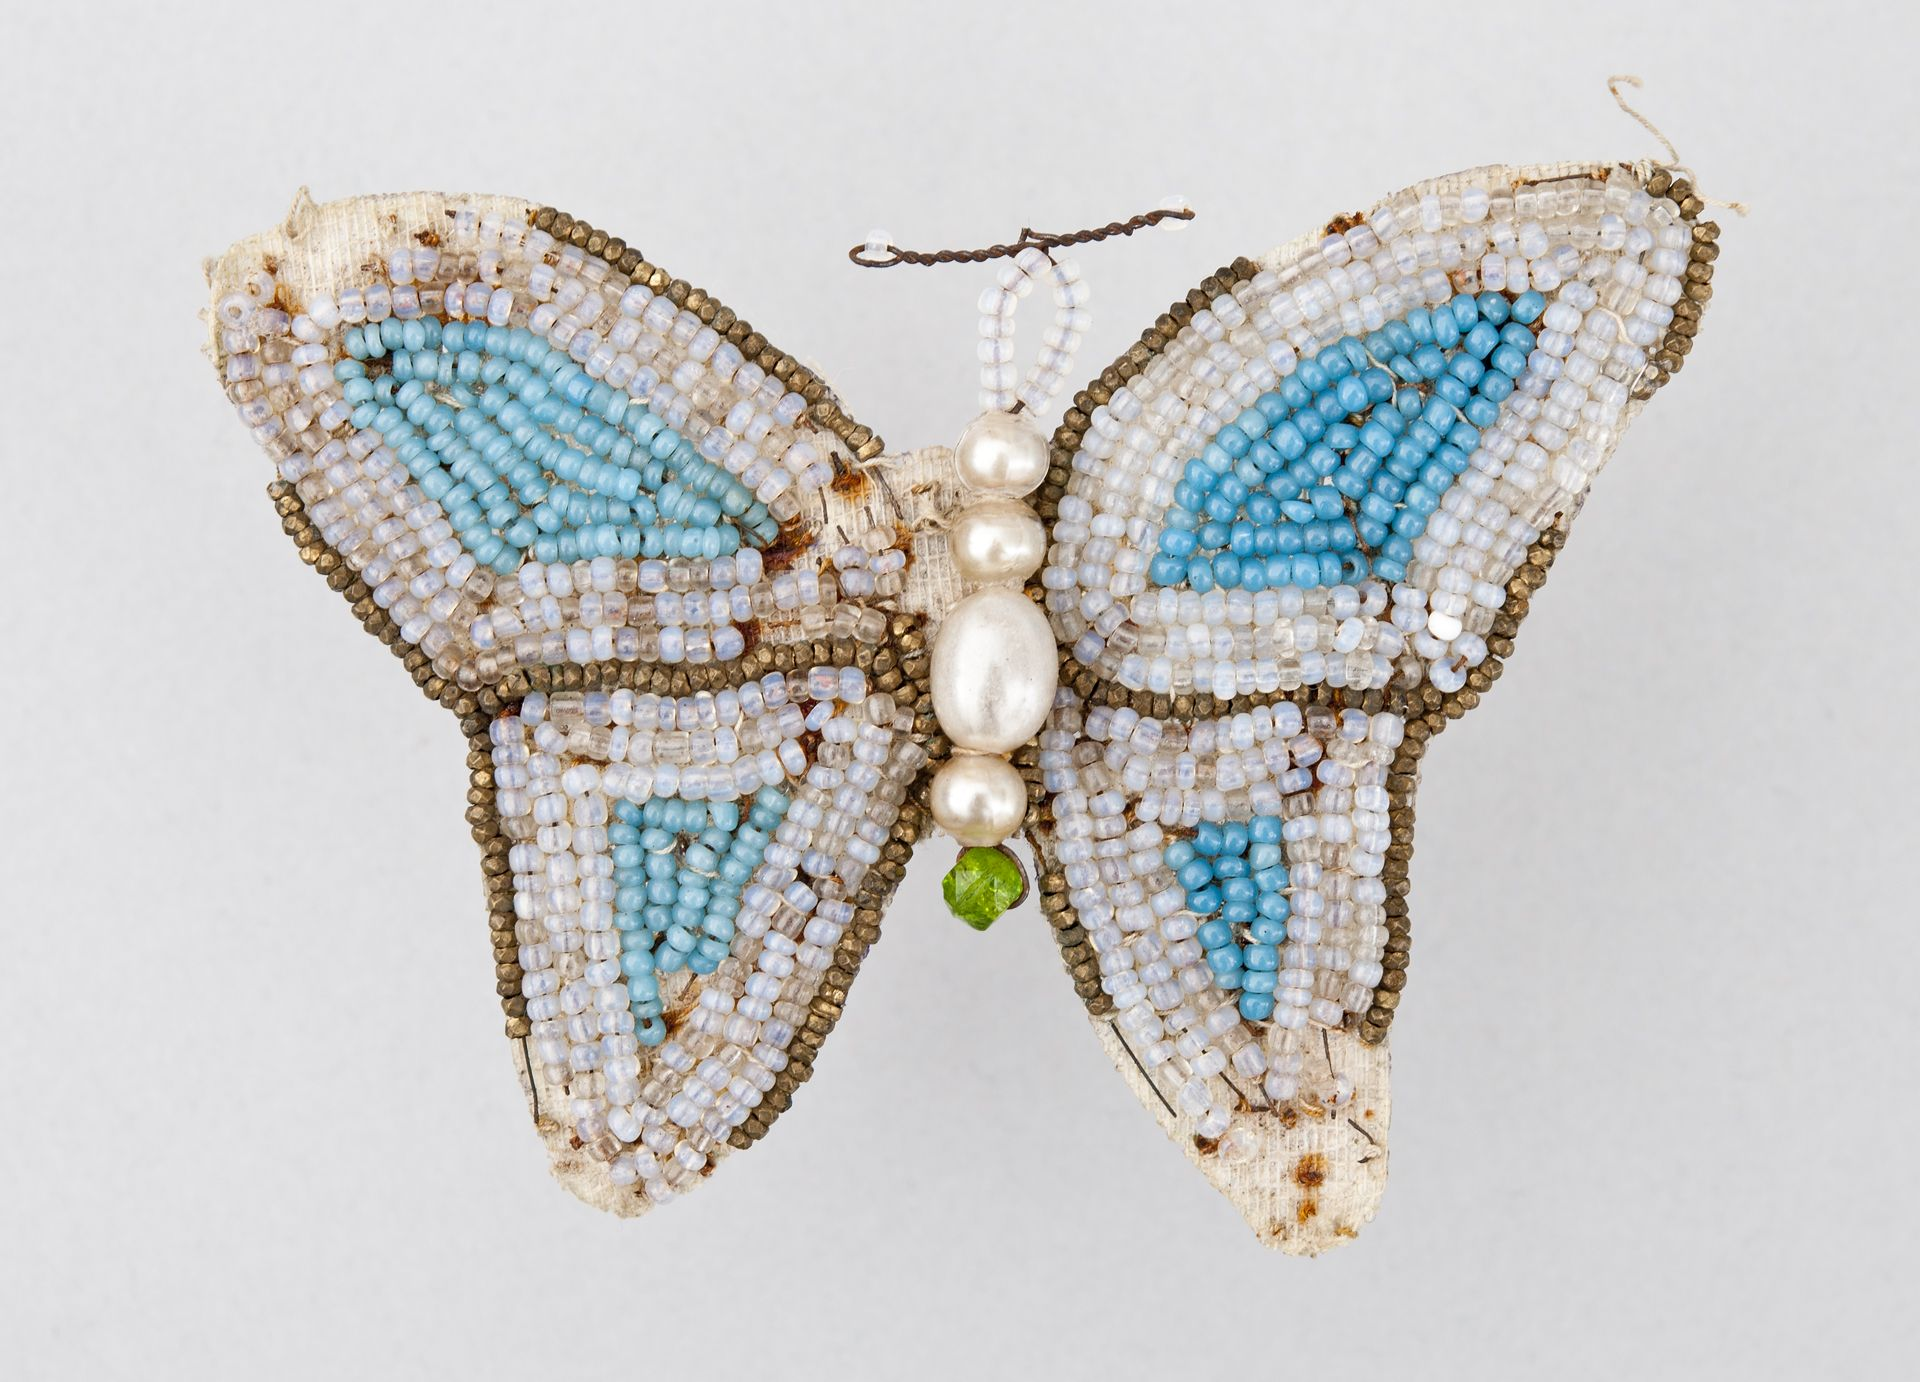 Butterfly shaped cotton belt buckle, decorated with wire and glass beads.